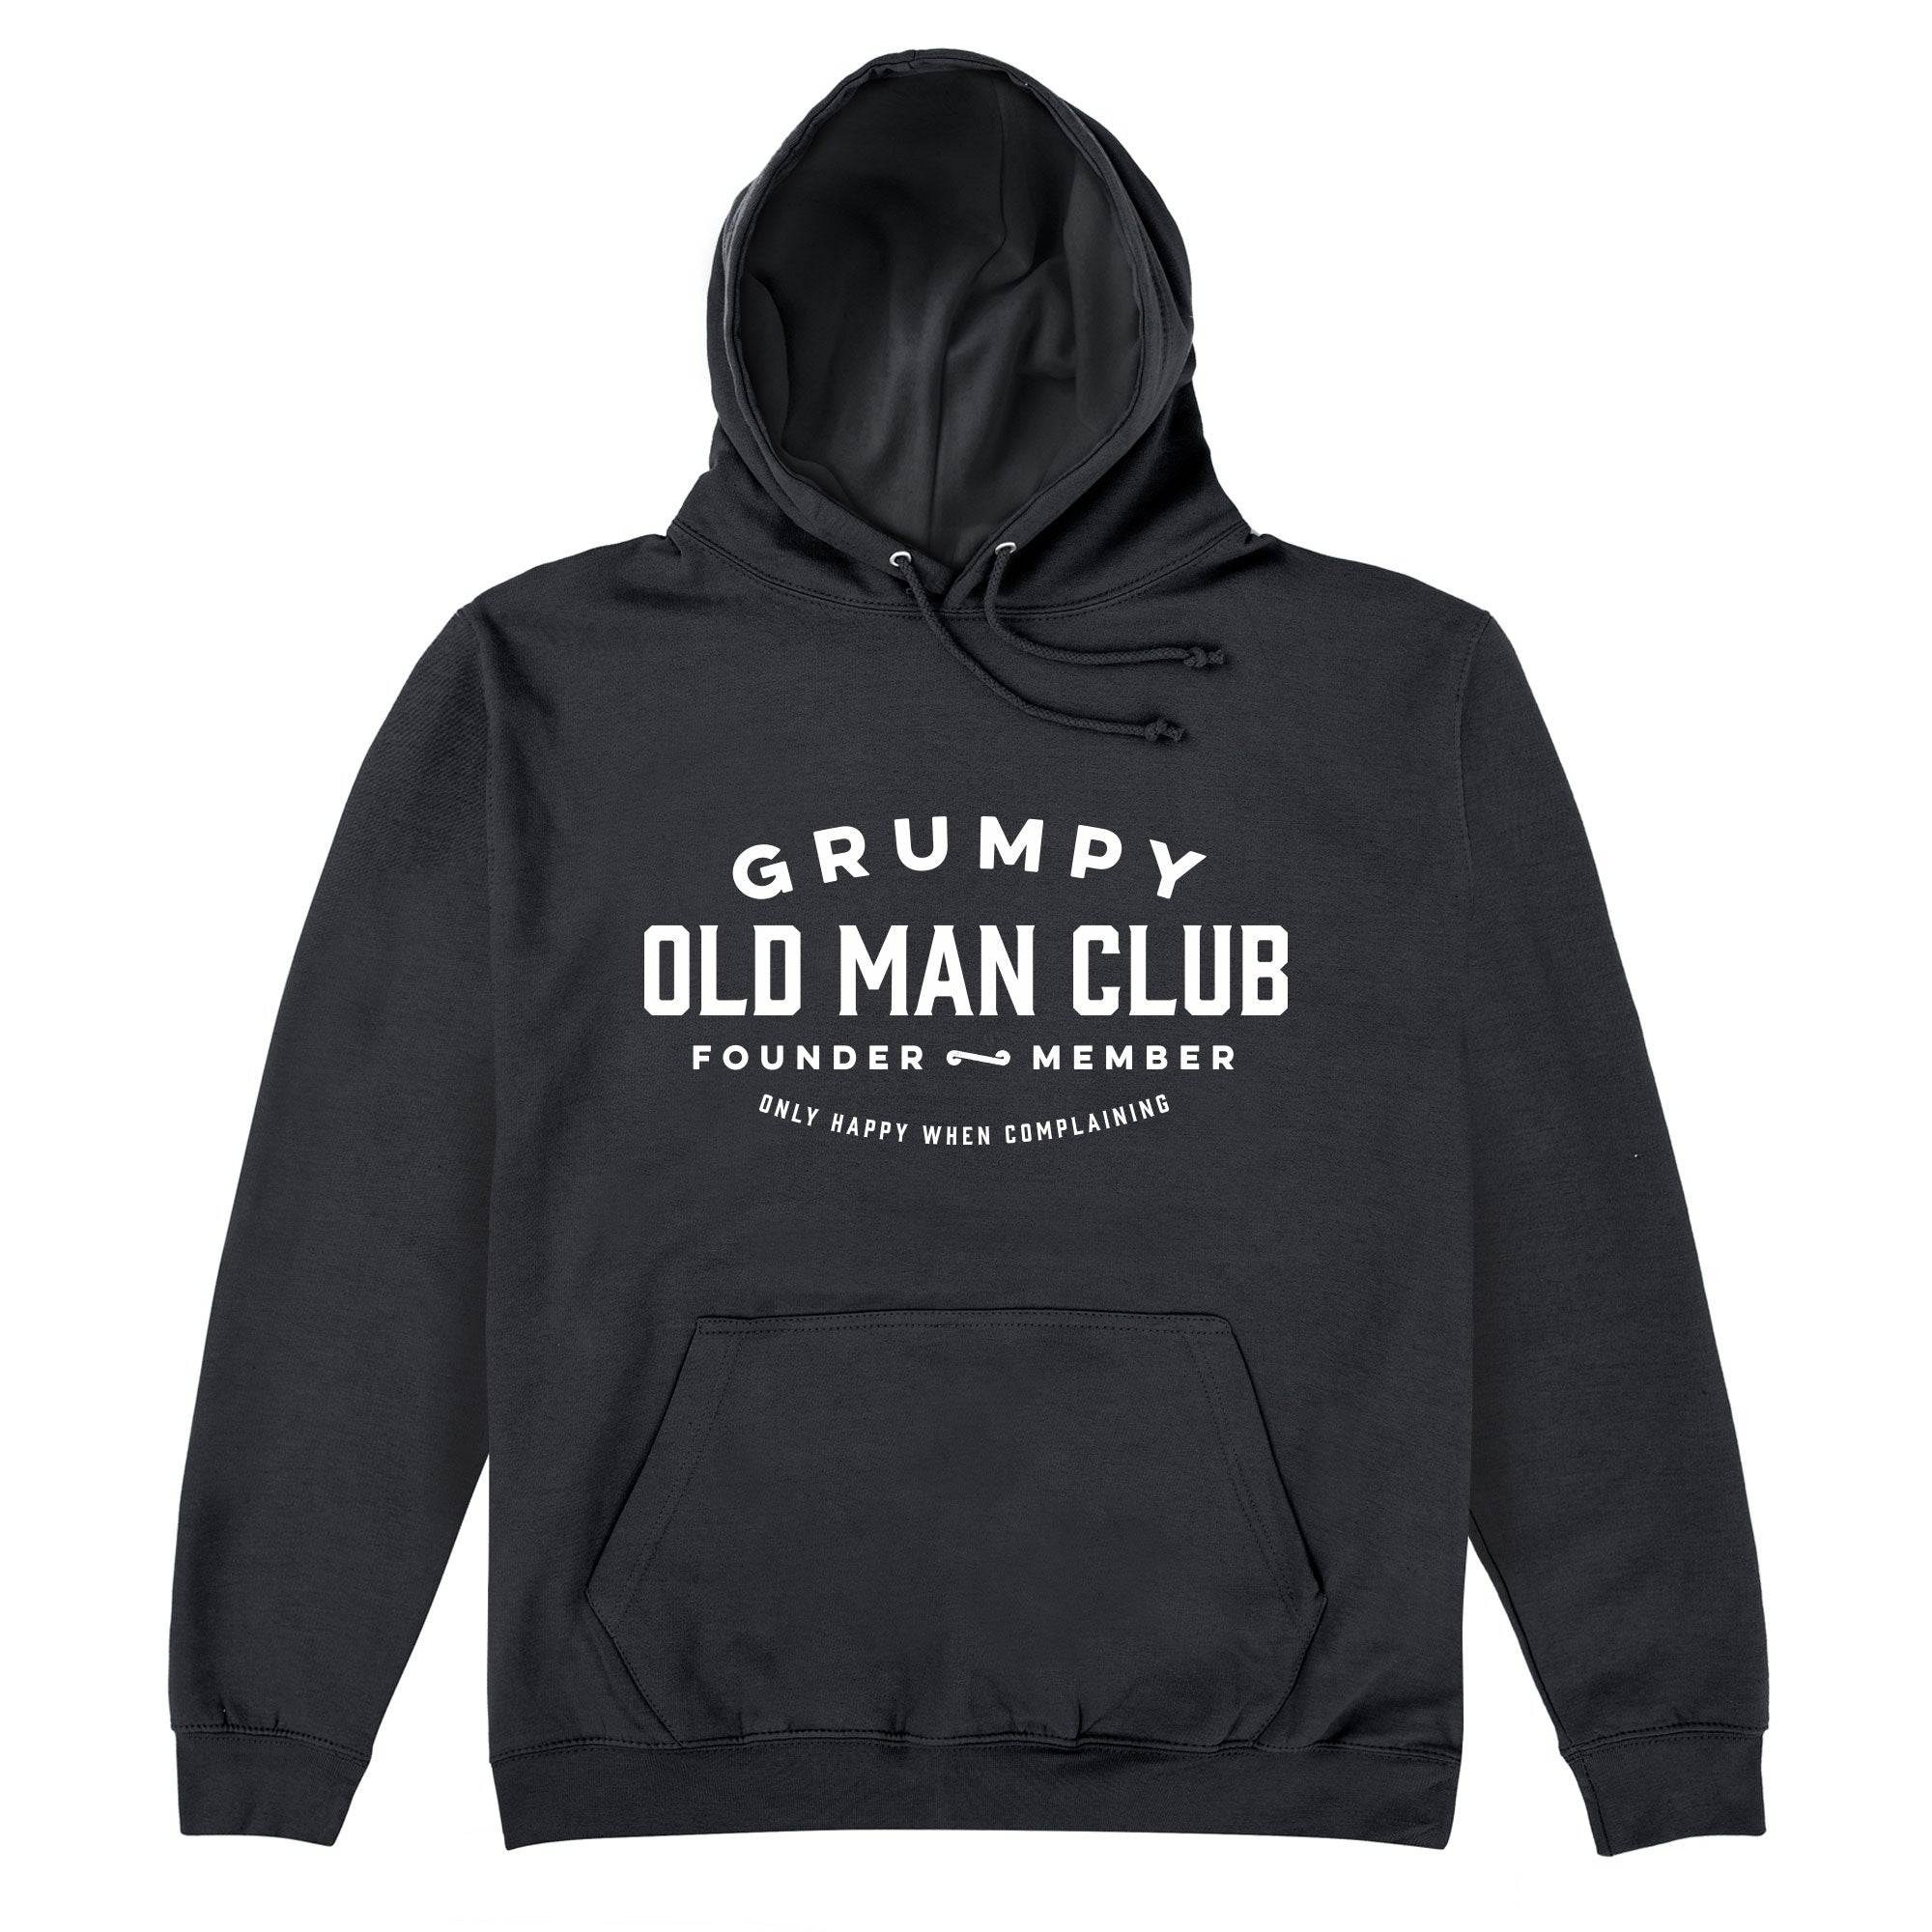 CHEAP Grumpy Old Man Club Hoodie 25722908197 – Clothing Accessories